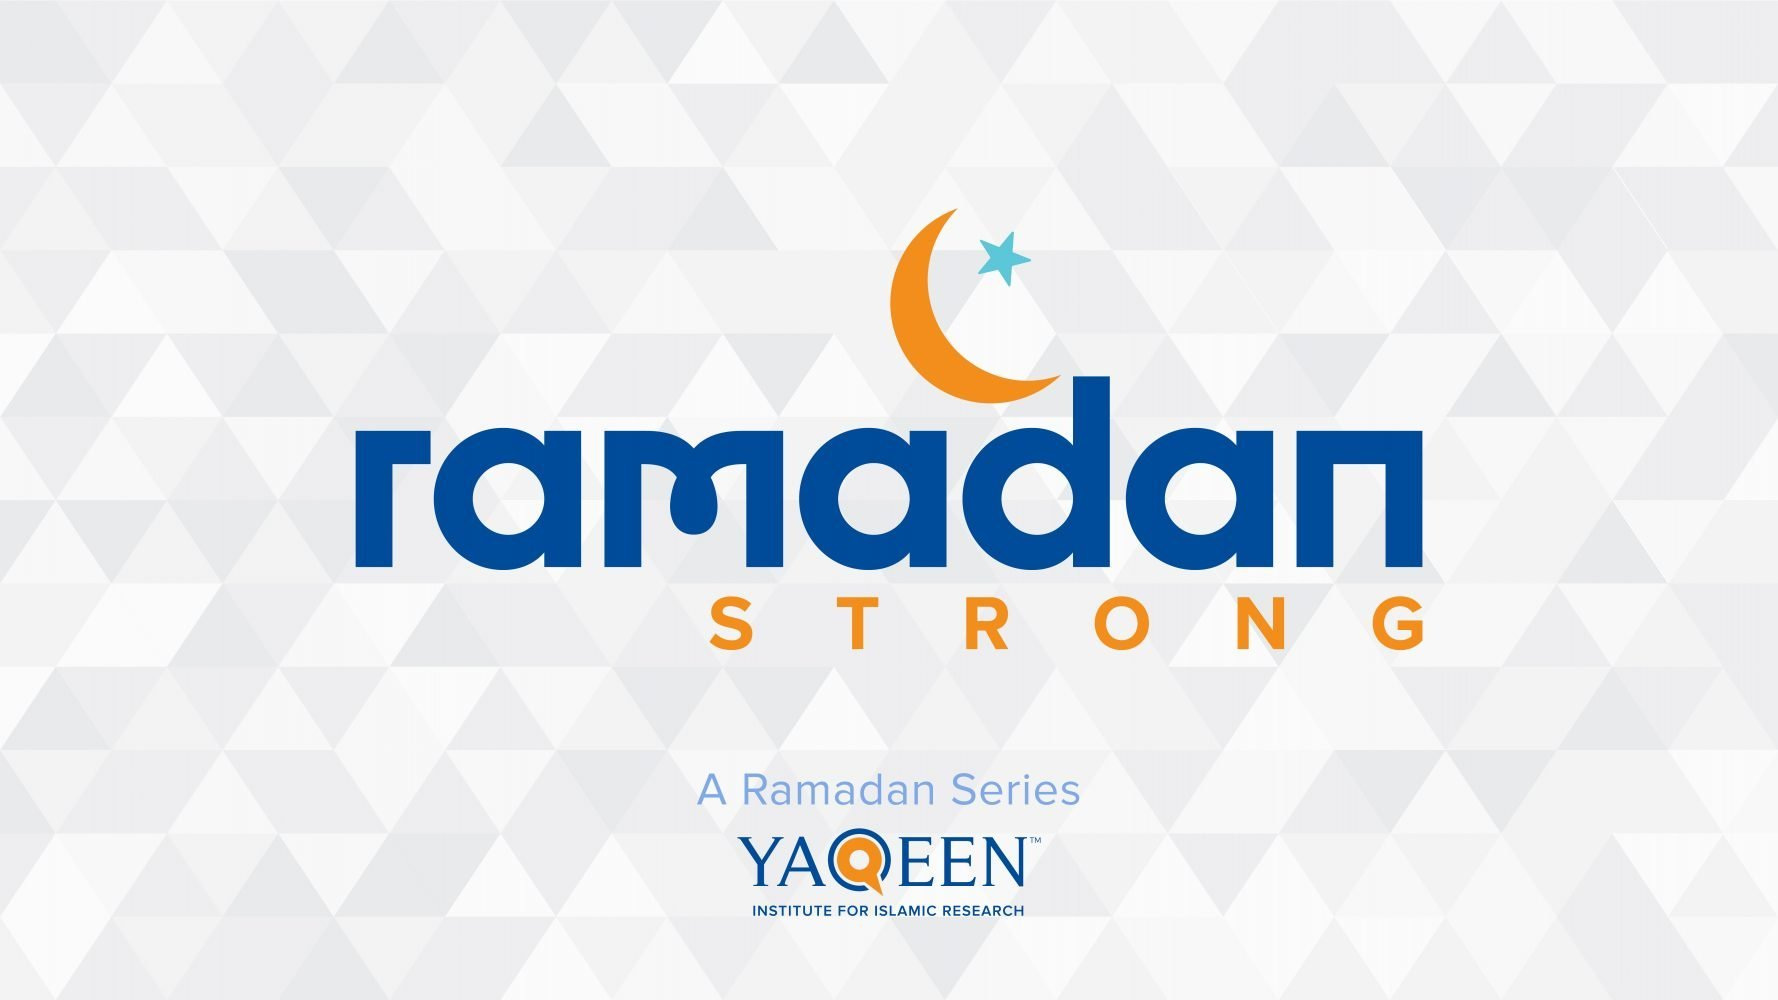 Enrich Your Ramadan with Yaqeen